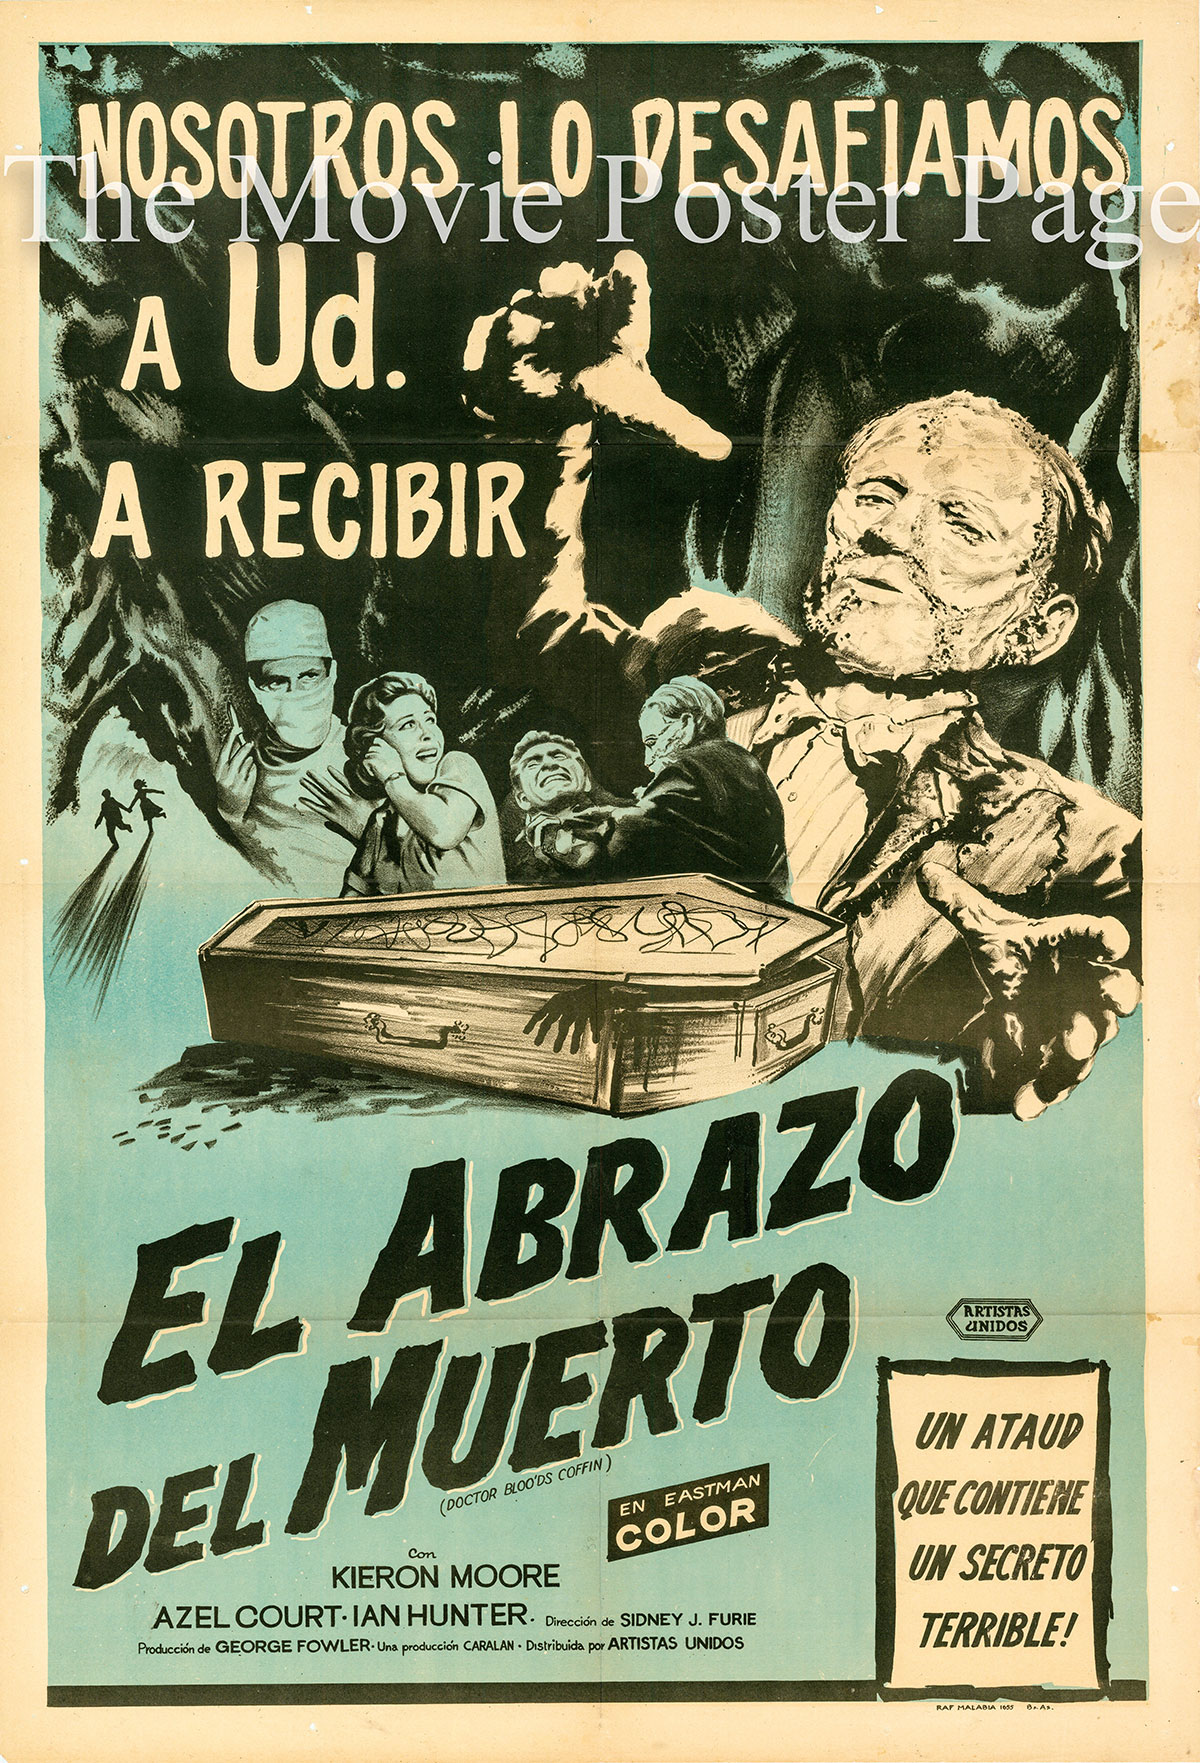 Pictured is an Argentine one-sheet poster for the 1961 Sidney J. Furie film Dr. Blood's Coffin starrint Kieron Moore.